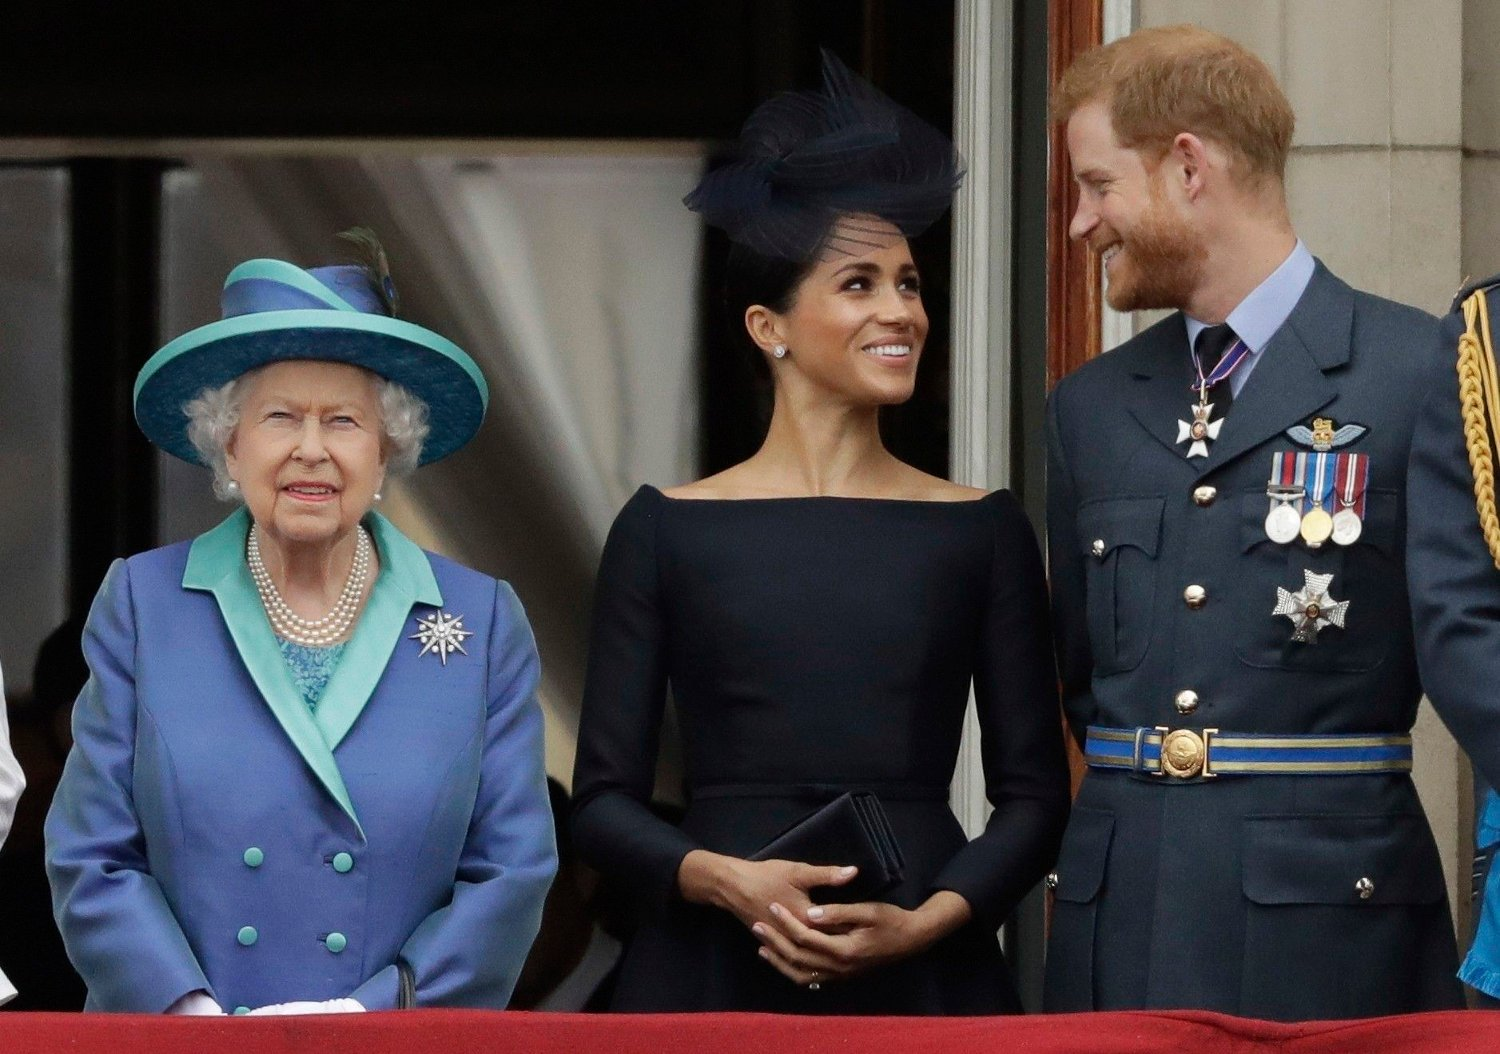 Britain Royals Prince Harry FILE - In this Tuesday, July 10, 2018 file photo Britain's Queen Elizabeth II, and Meghan the Duchess of Sussex and Prince Harry watch a flypast of Royal Air Force aircraft pass over Buckingham Palace in London. In a stunning declaration, Britain's Prince Harry and his wife, Meghan, said they are planning